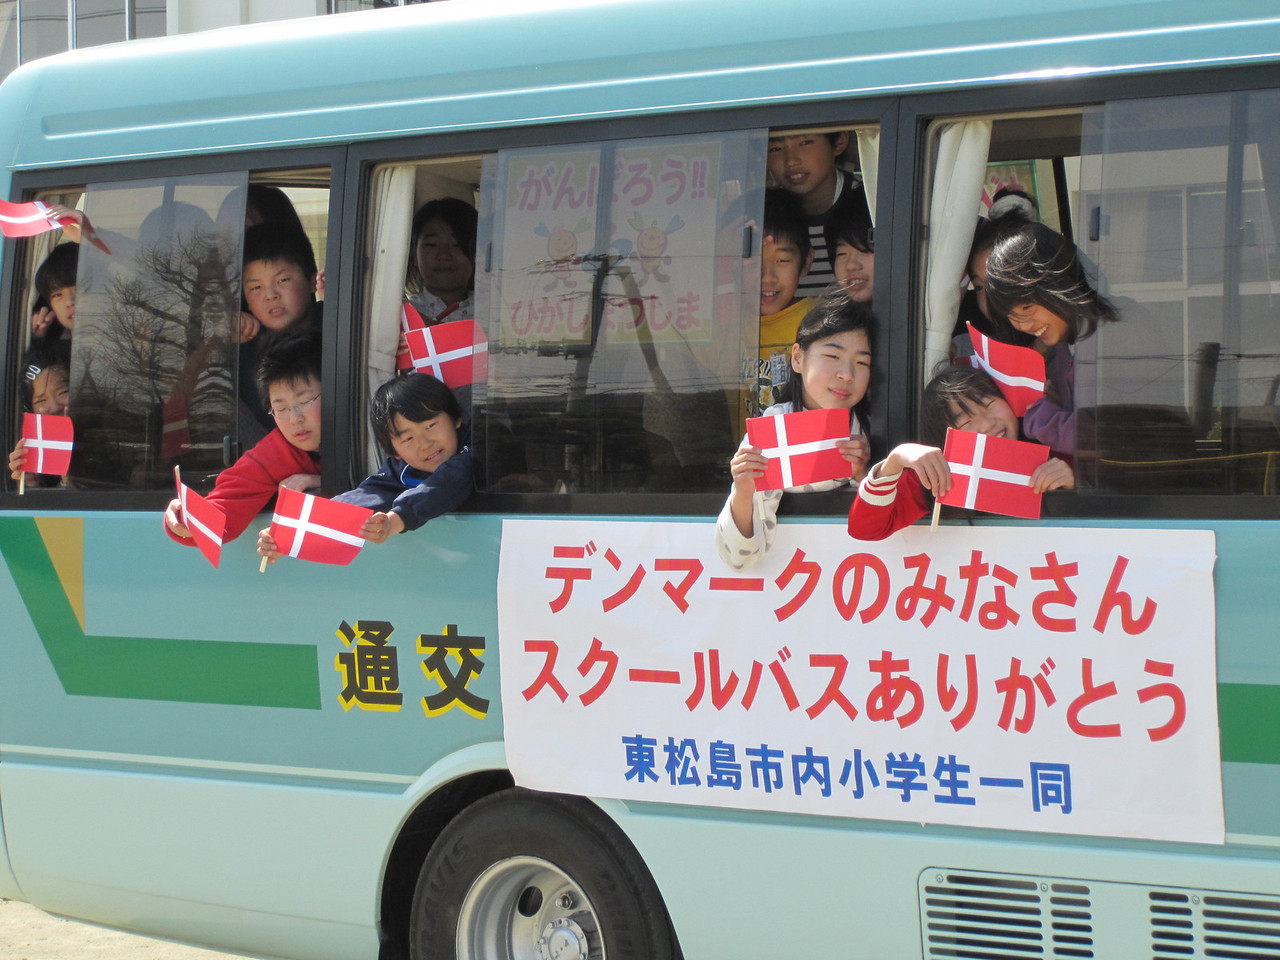 School children with Danish flags at the busses donated by Norden A/S